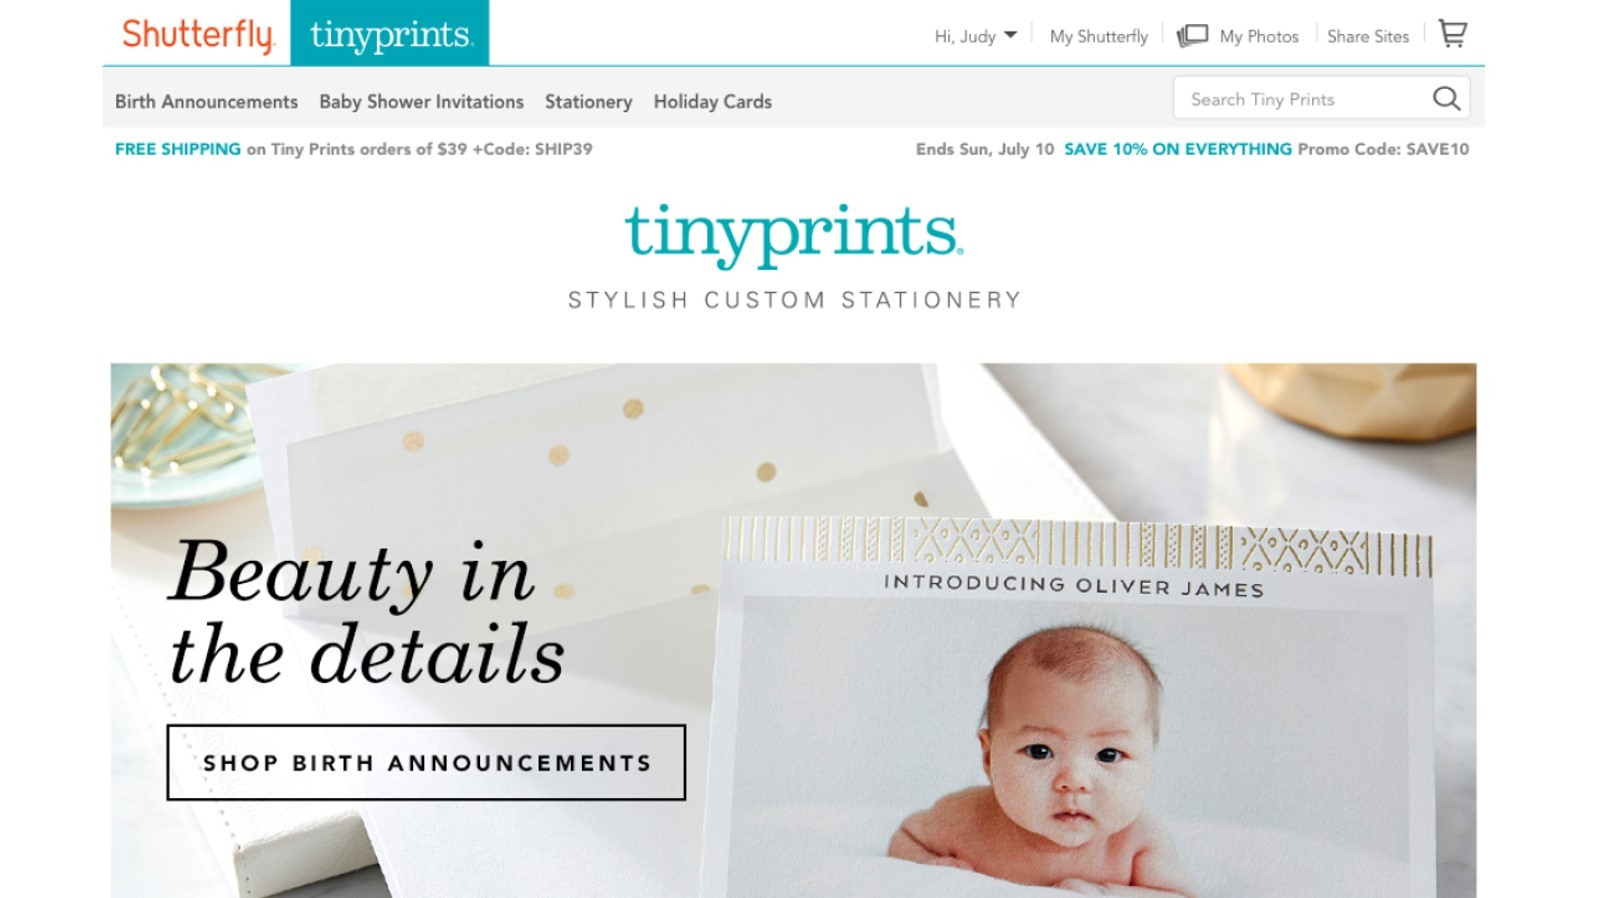 tiny prints opens new home on shutterfly com offering customers new